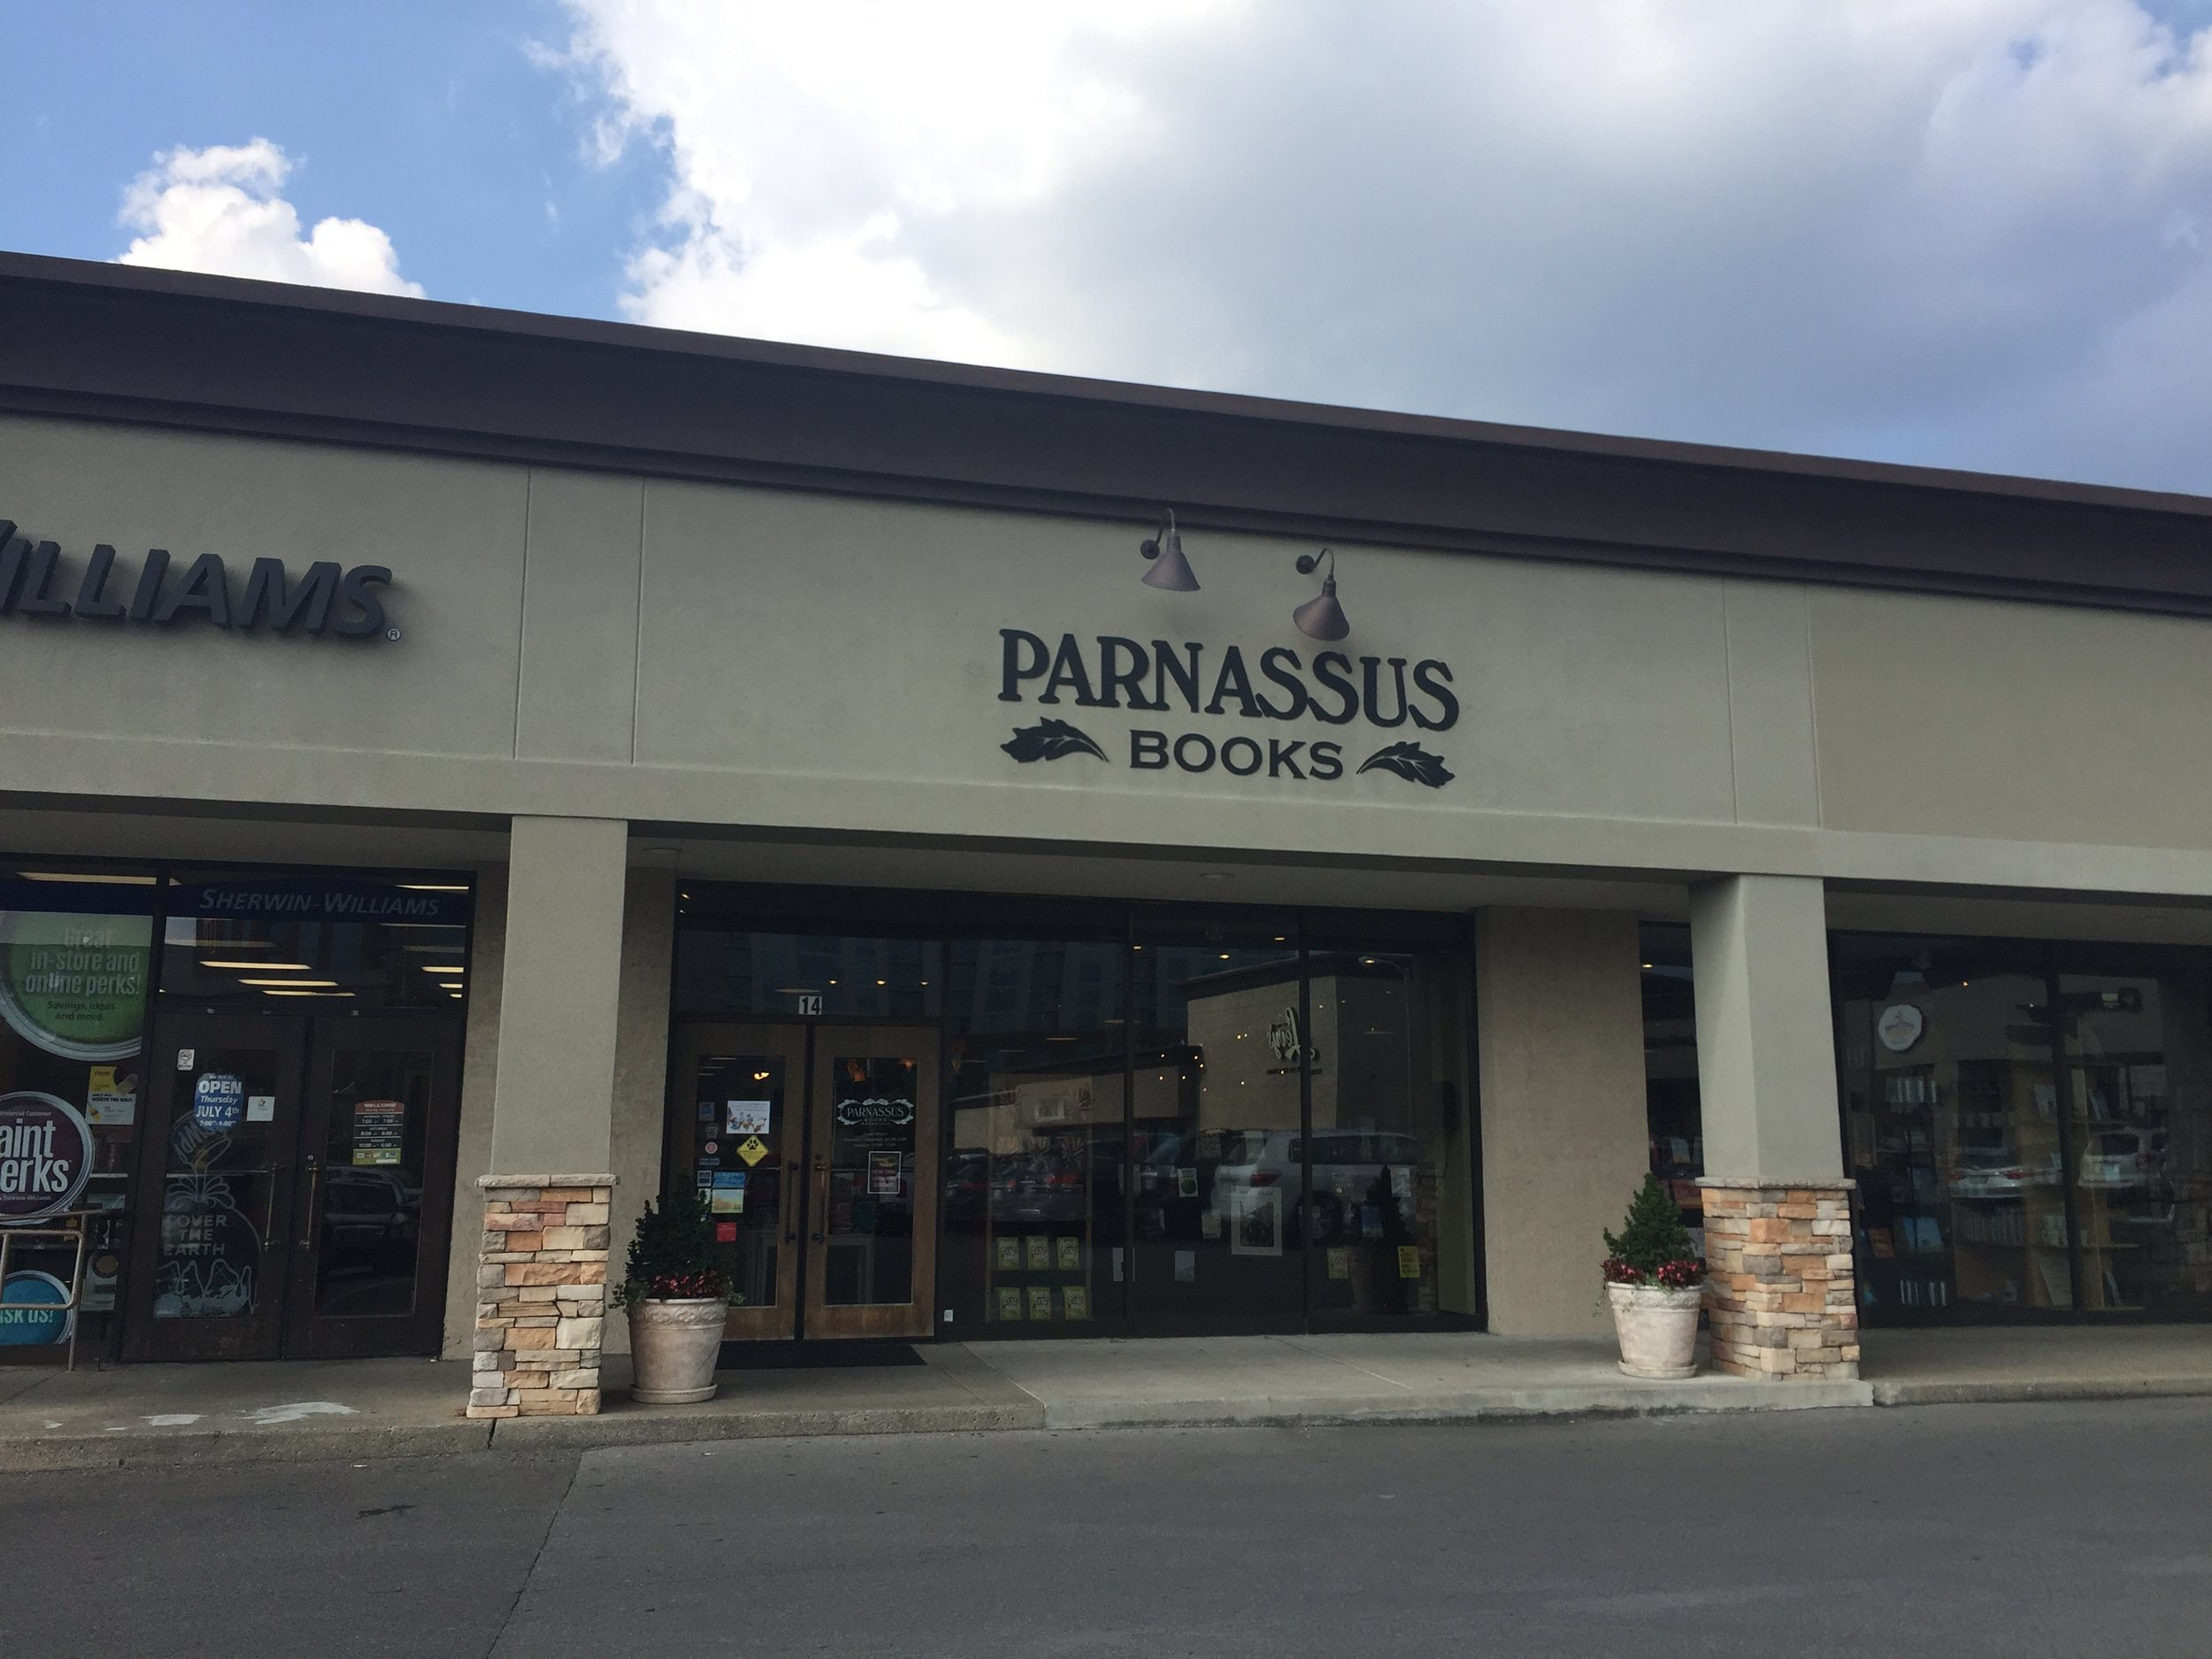 image description: The storefront of Parnassus Books. Suburban strip mall beige and all.